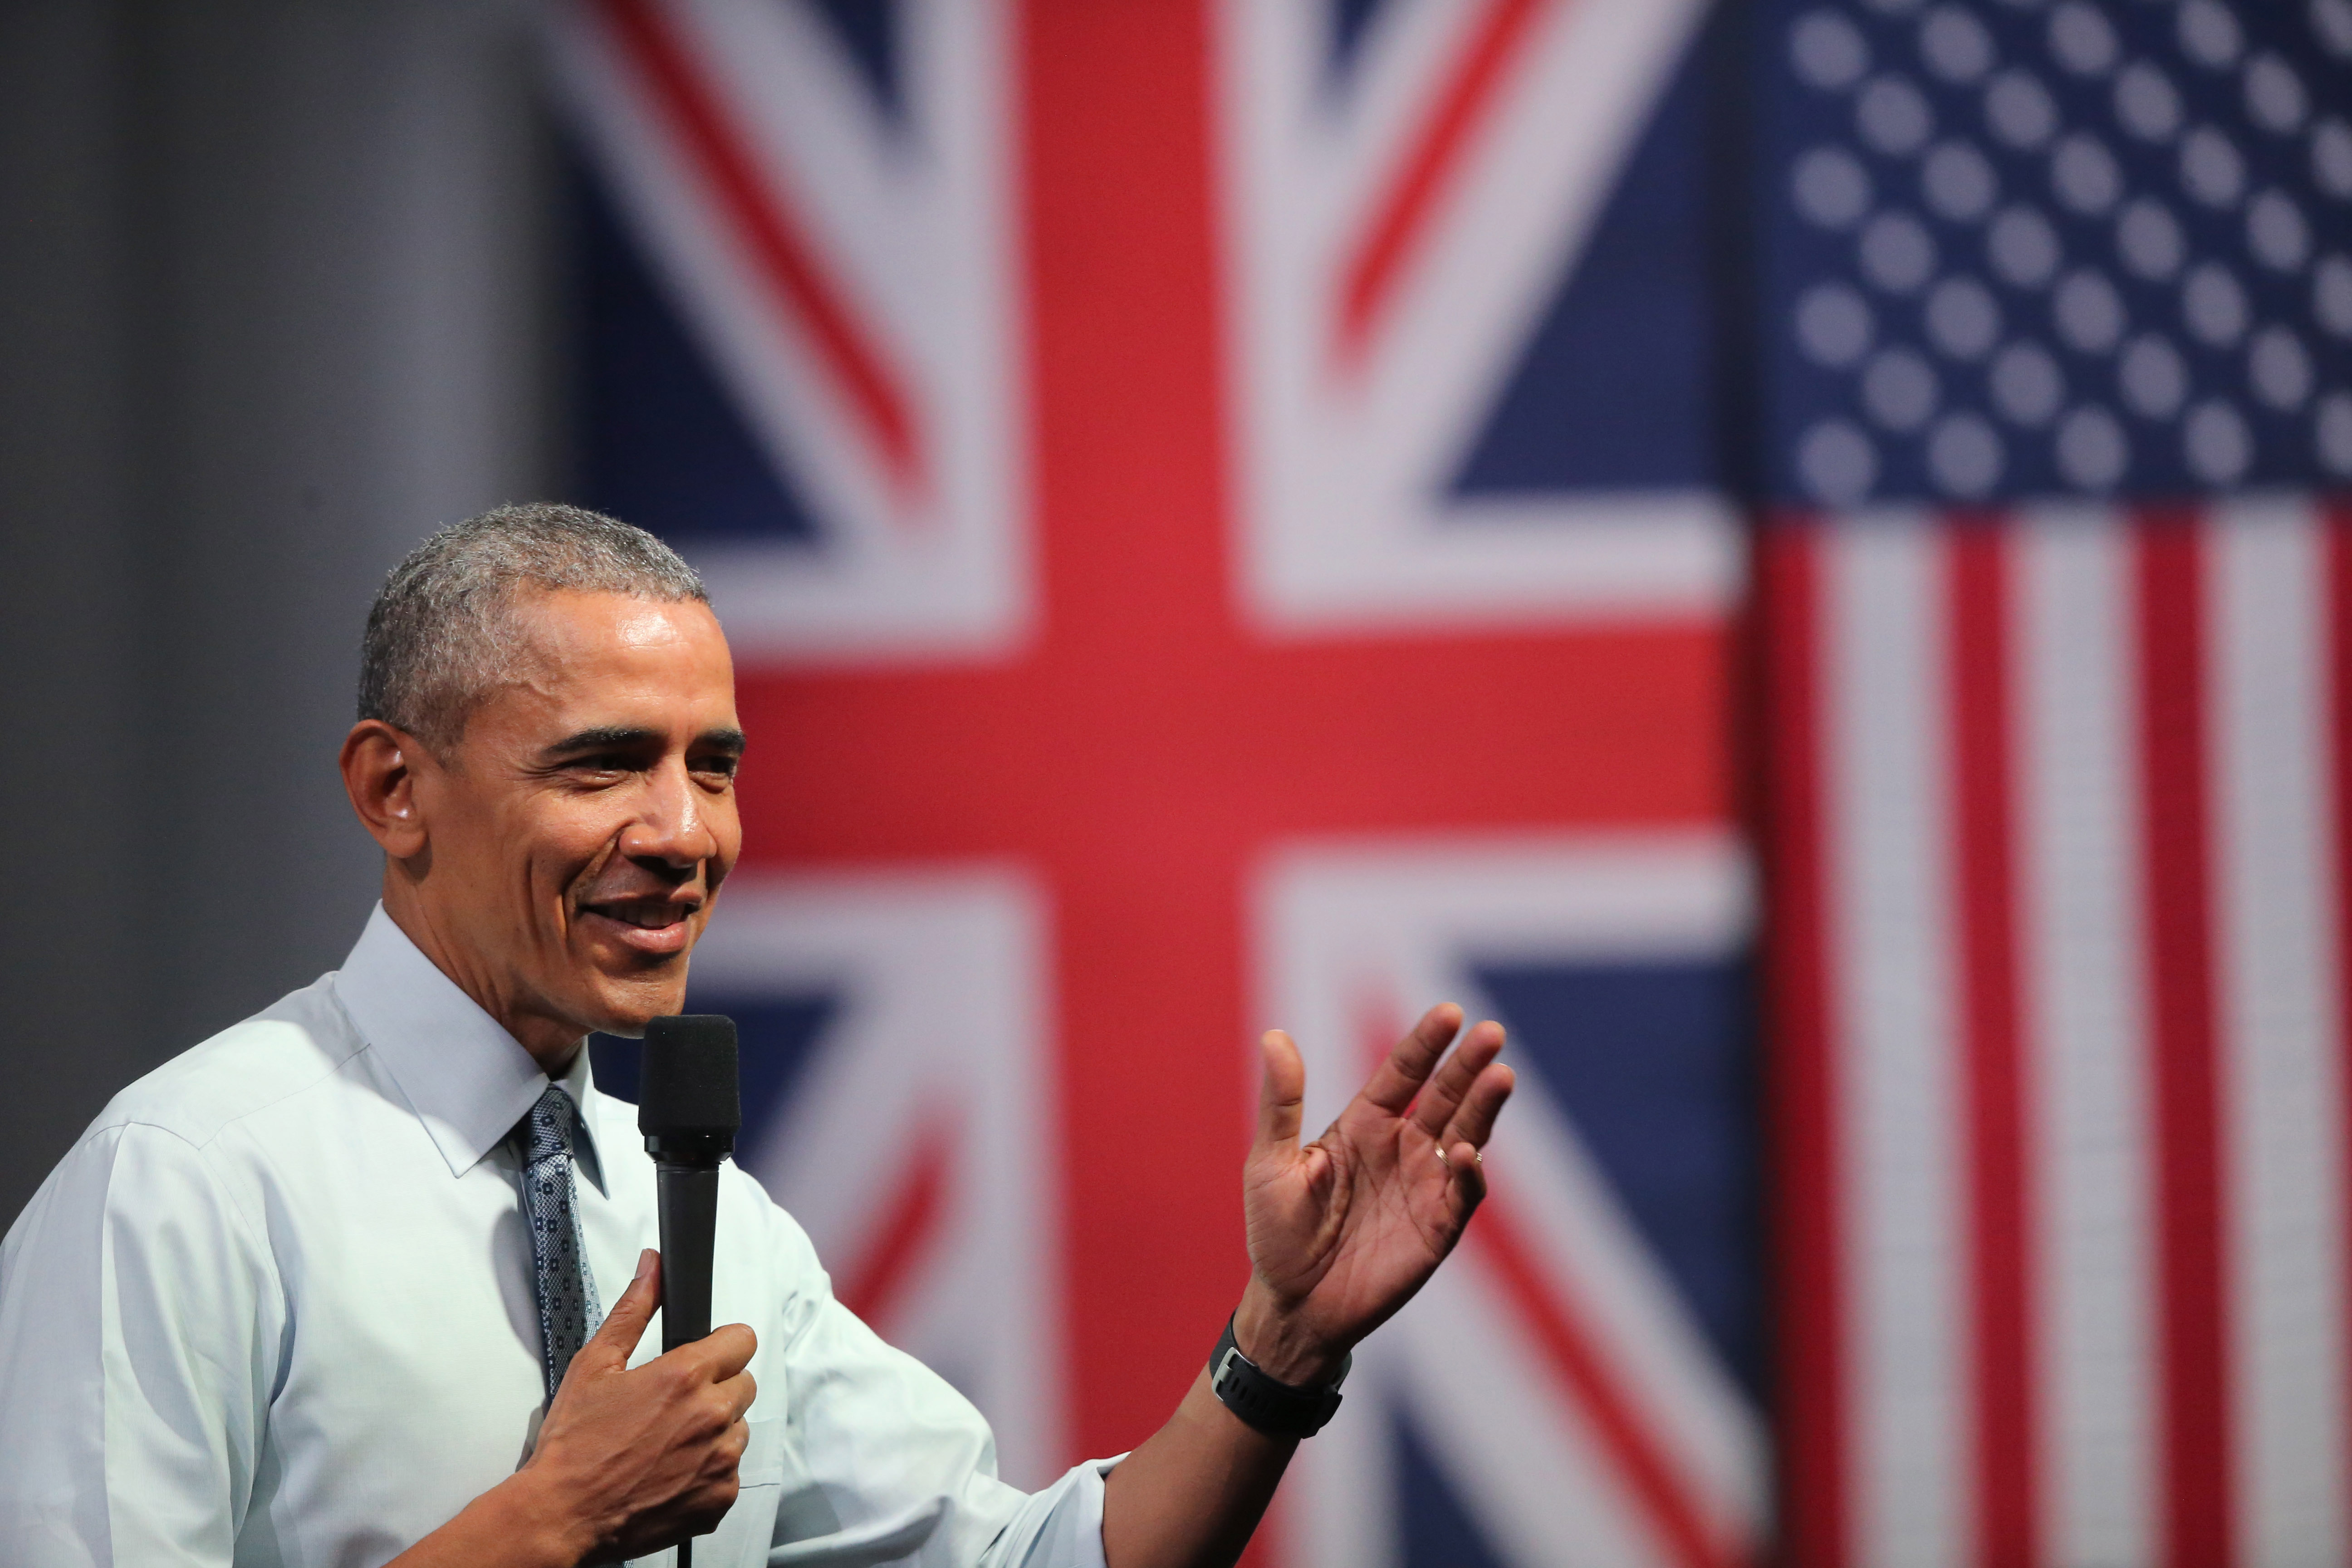 President Obama Will Host His Own Music Festival At The White House GettyImages 523439134